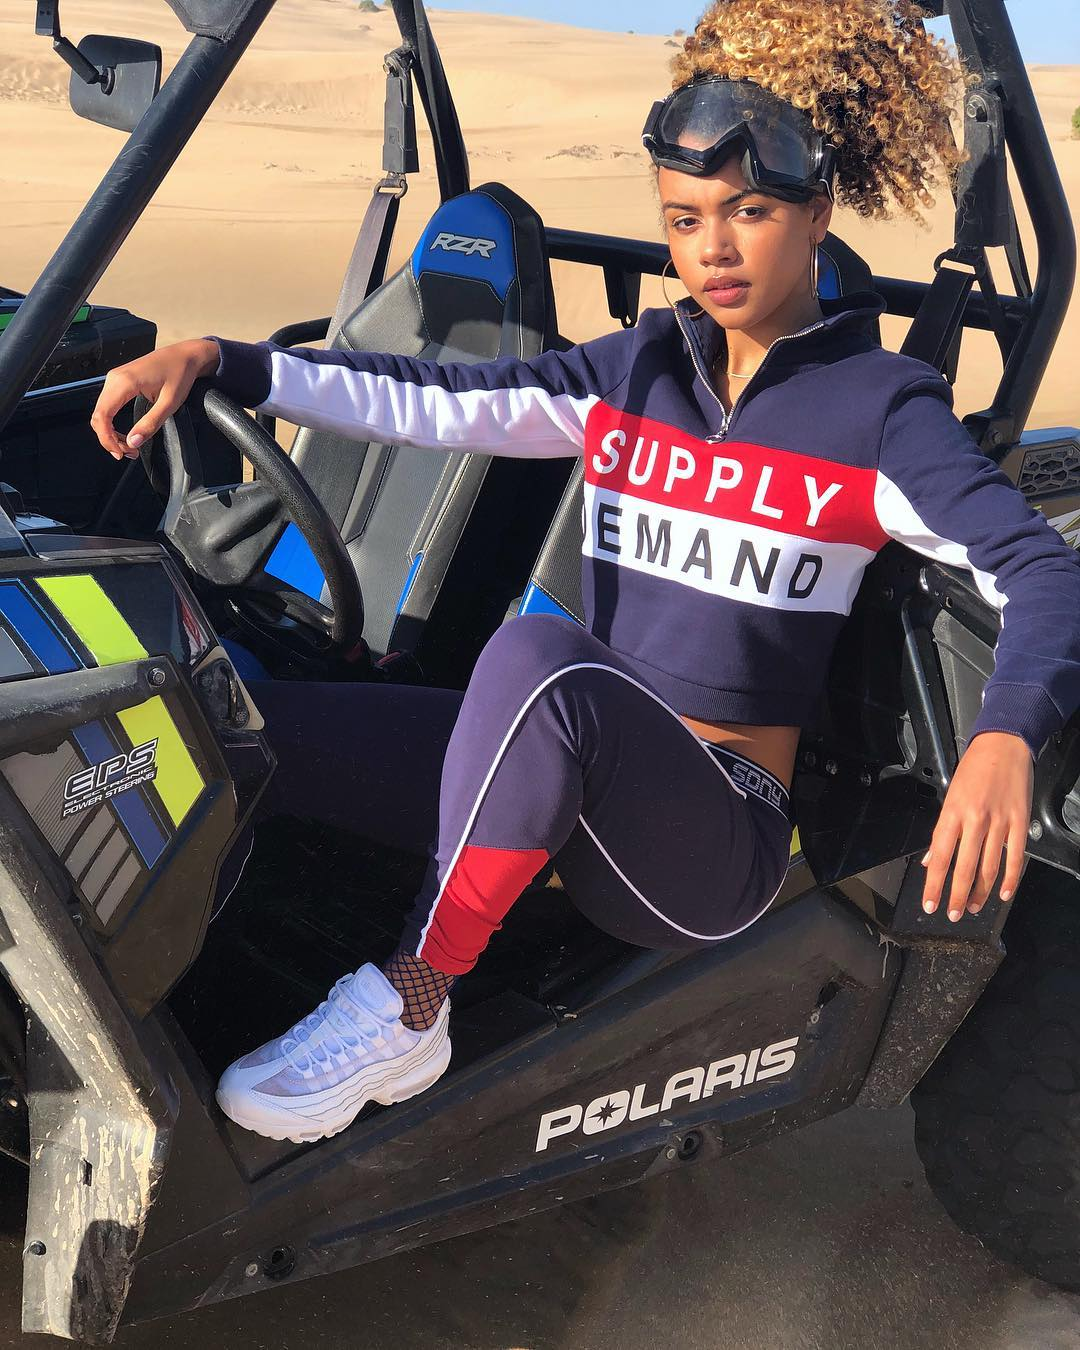 Ocean Lewis, in Supply & Demand clothing, poses in a dune buggy in the desert